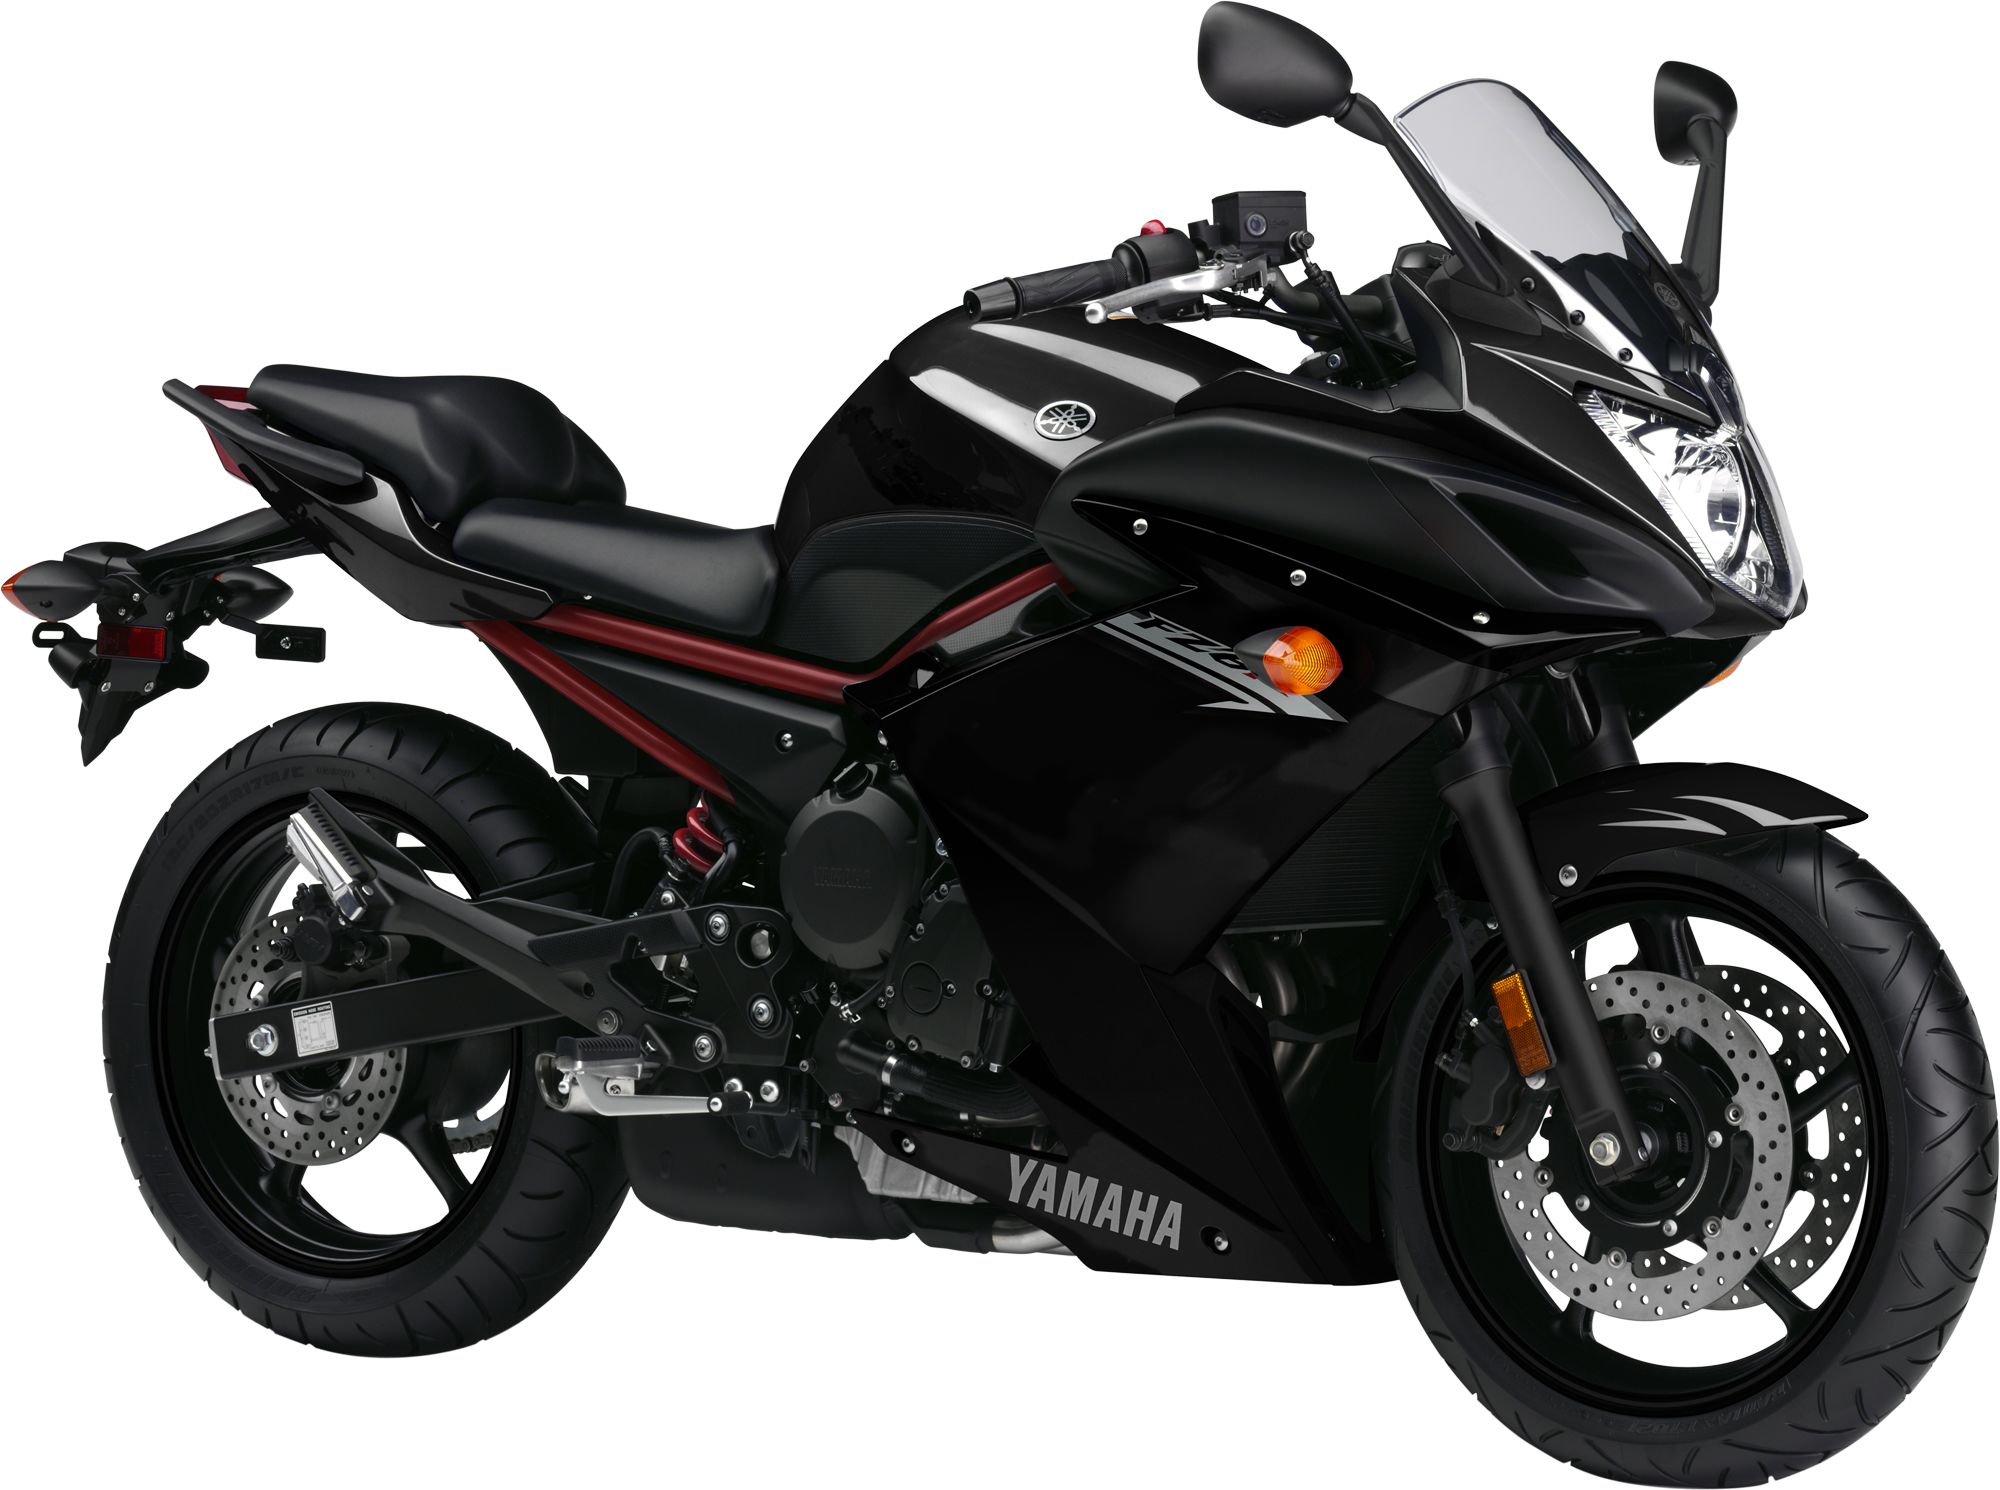 Yamaha fz6r photo - 8